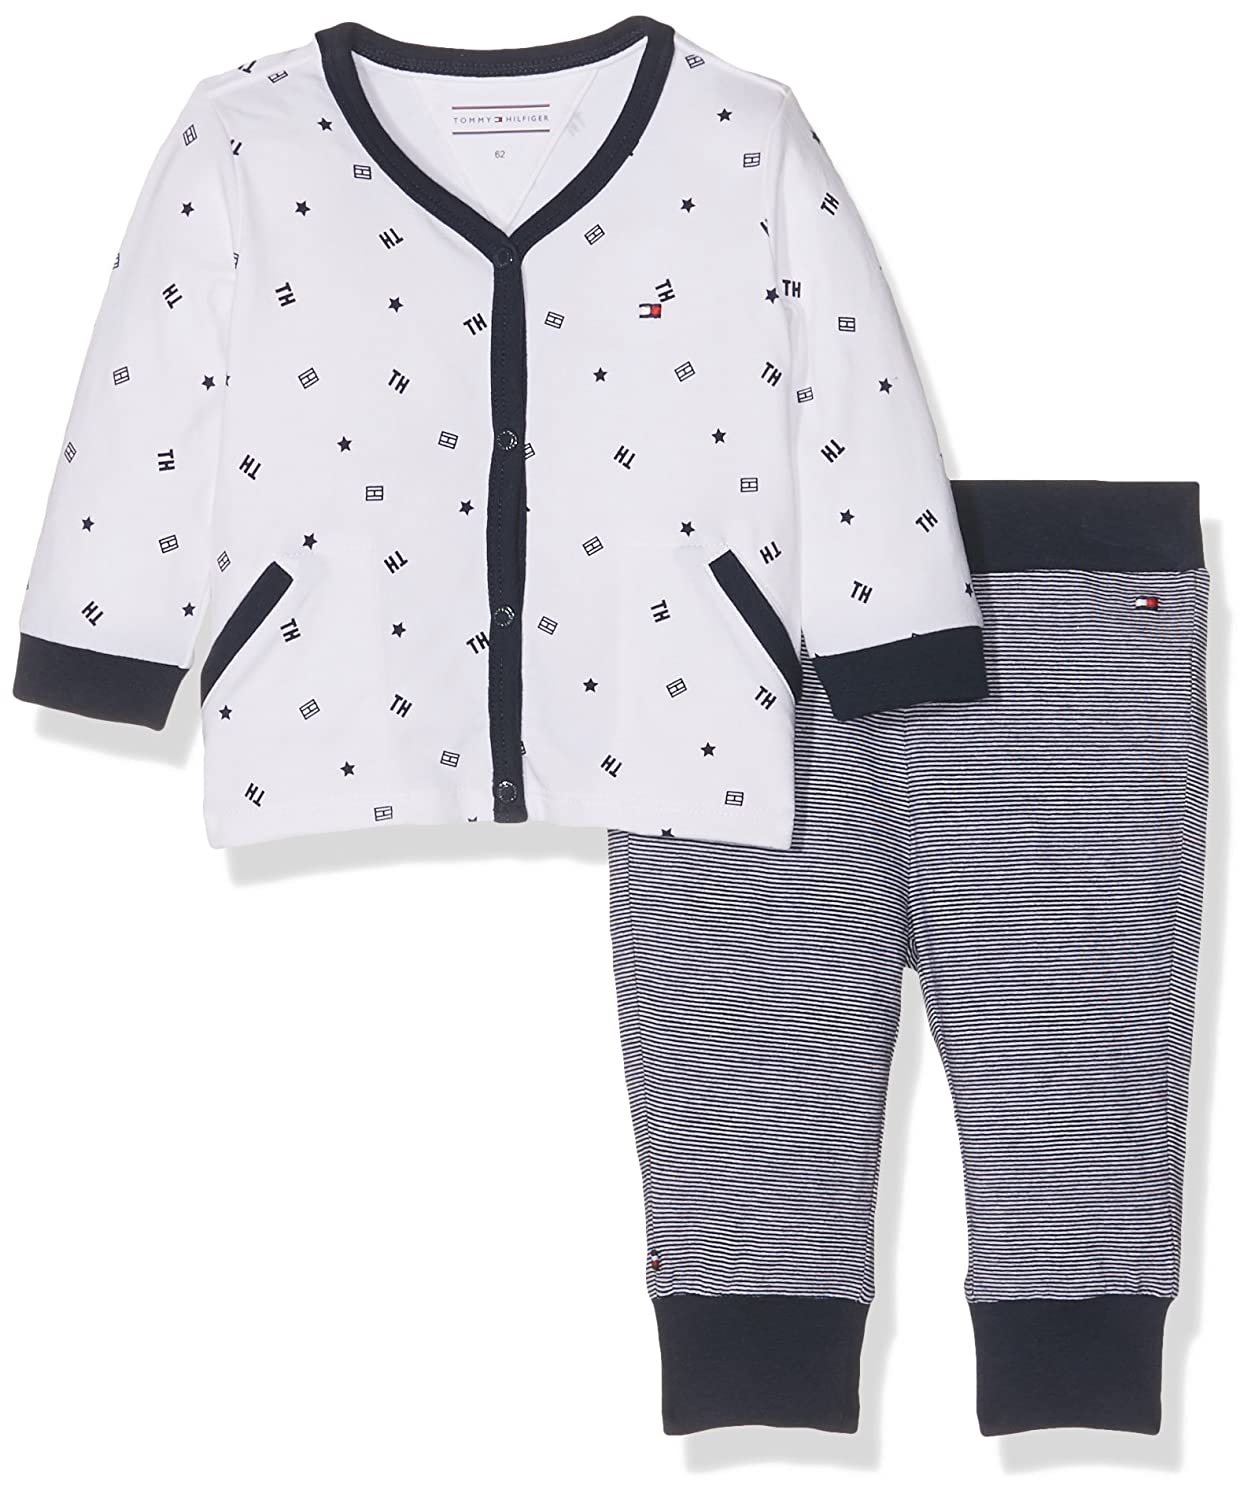 Tommy Hilfiger Baby Boys' Clothing Set Blue (Navy Blazer 431) 80 KN0KN00773